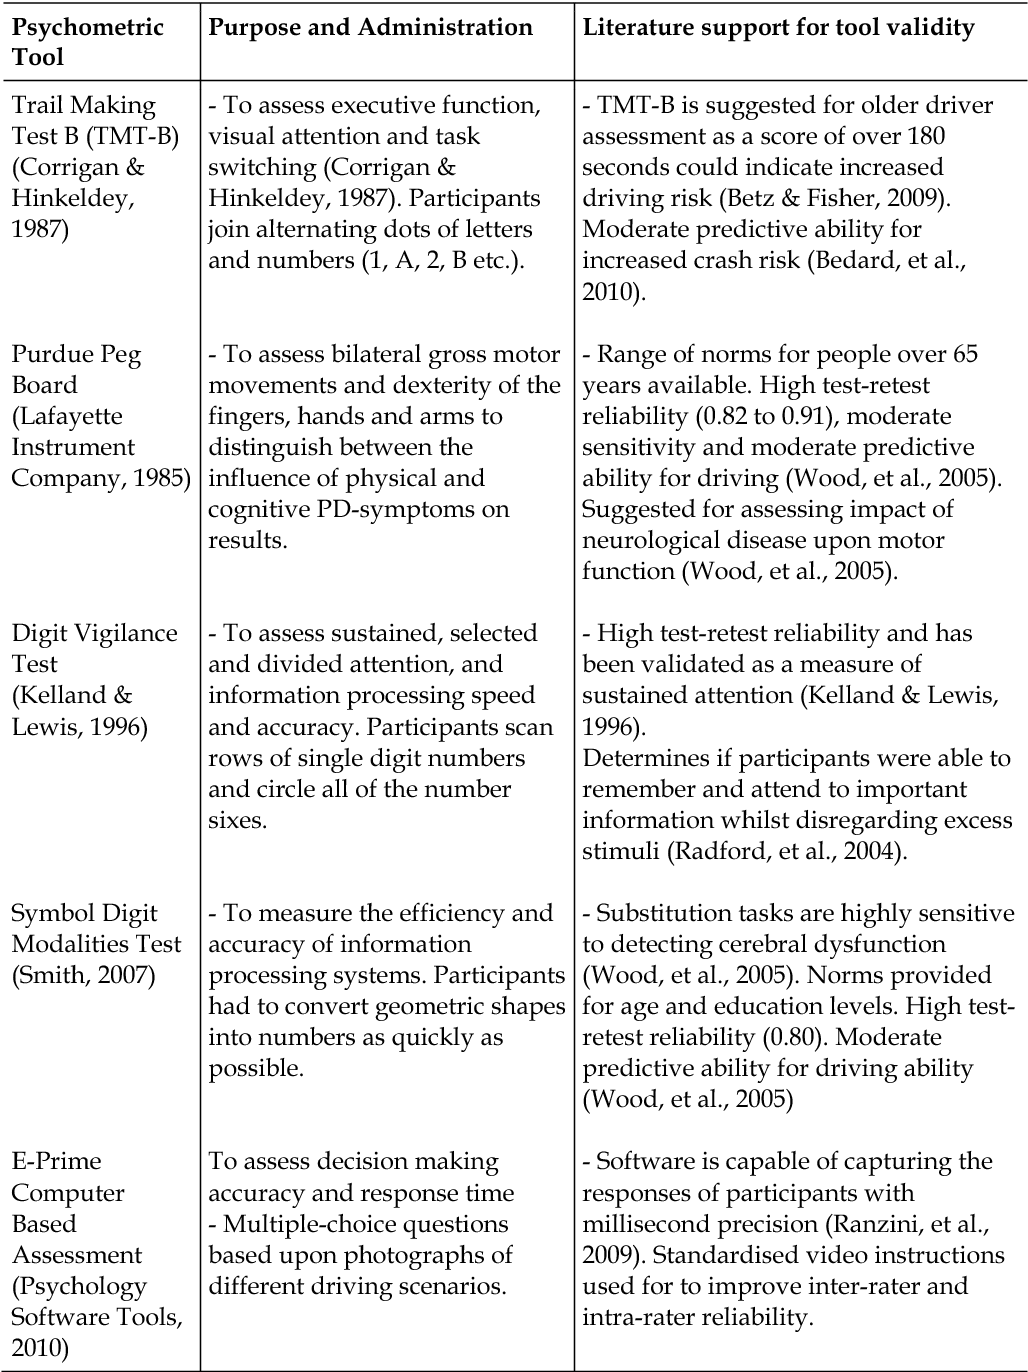 Table 3 from An Investigation into the Impact of Parkinson's